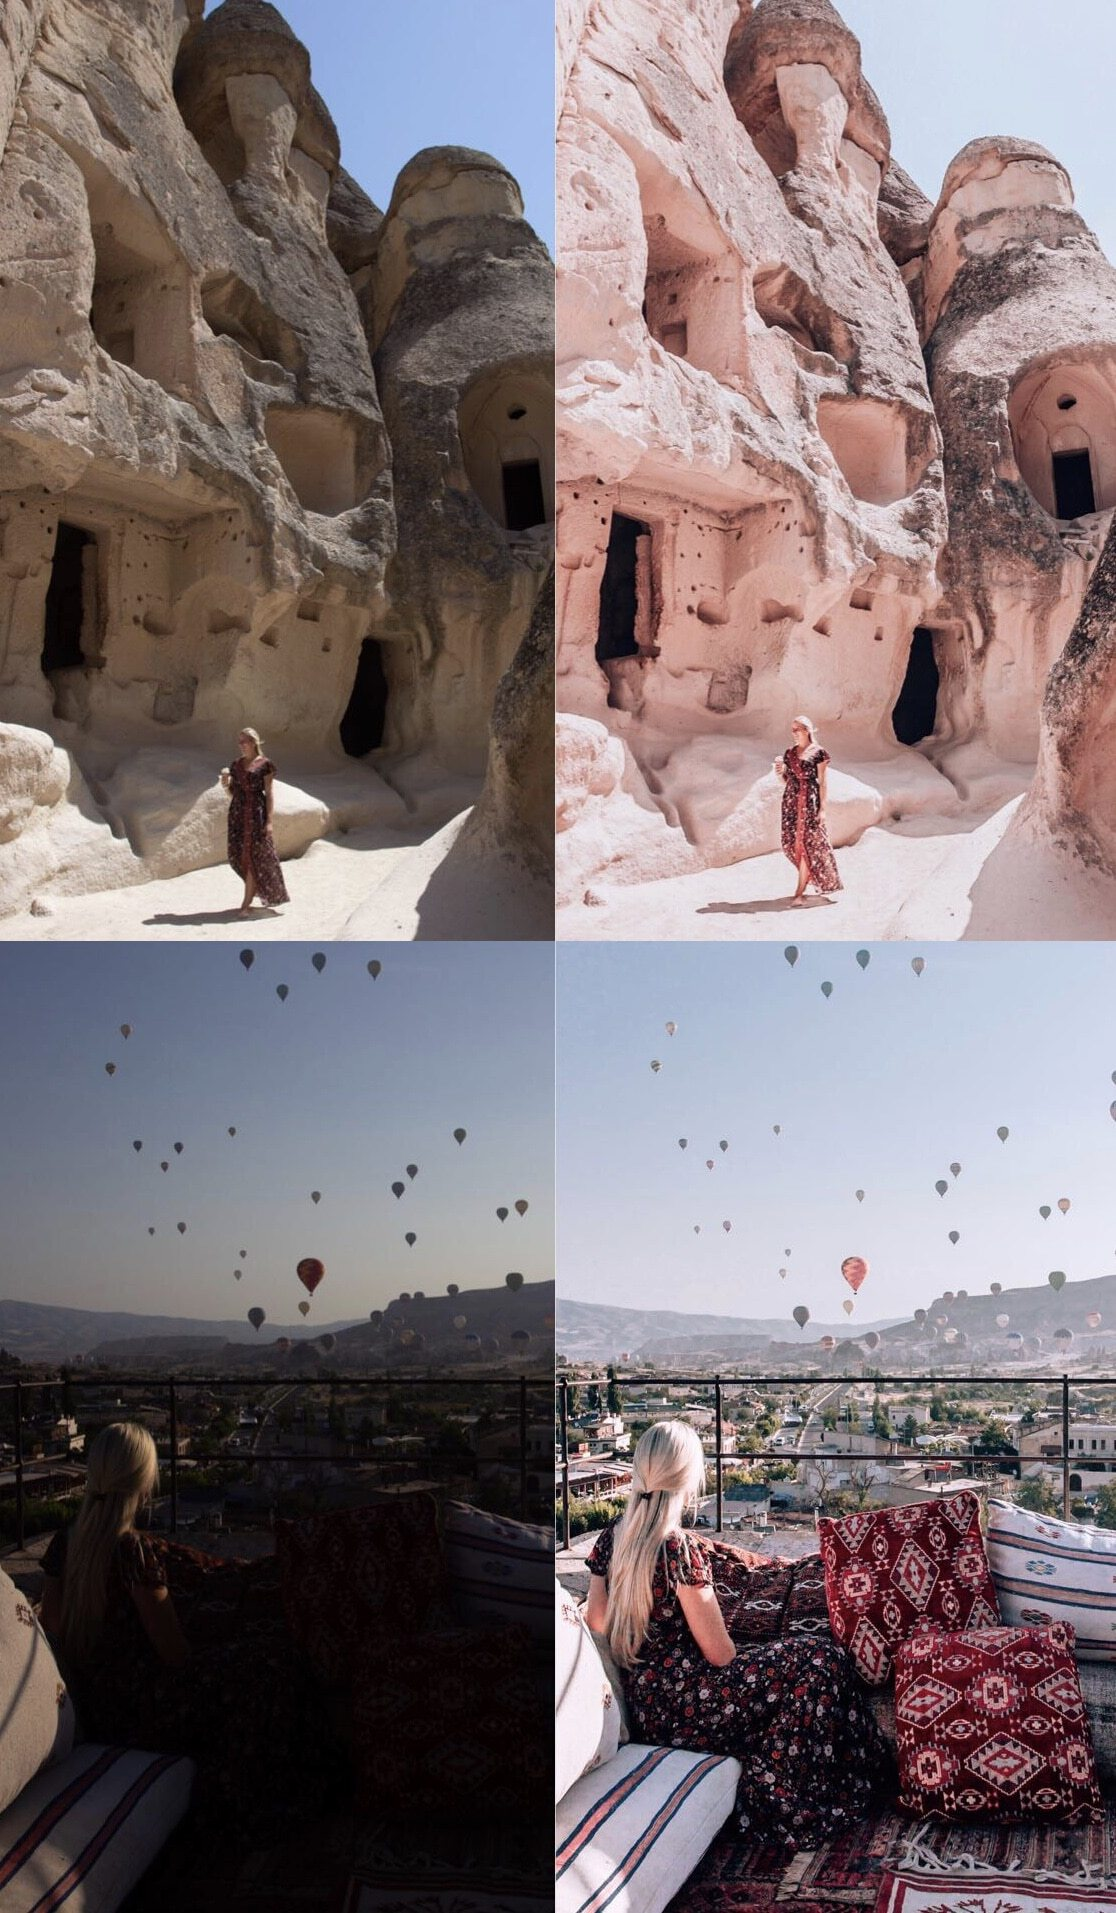 Aggie lal @travel_inhershoes presents before and after Lightroom edits